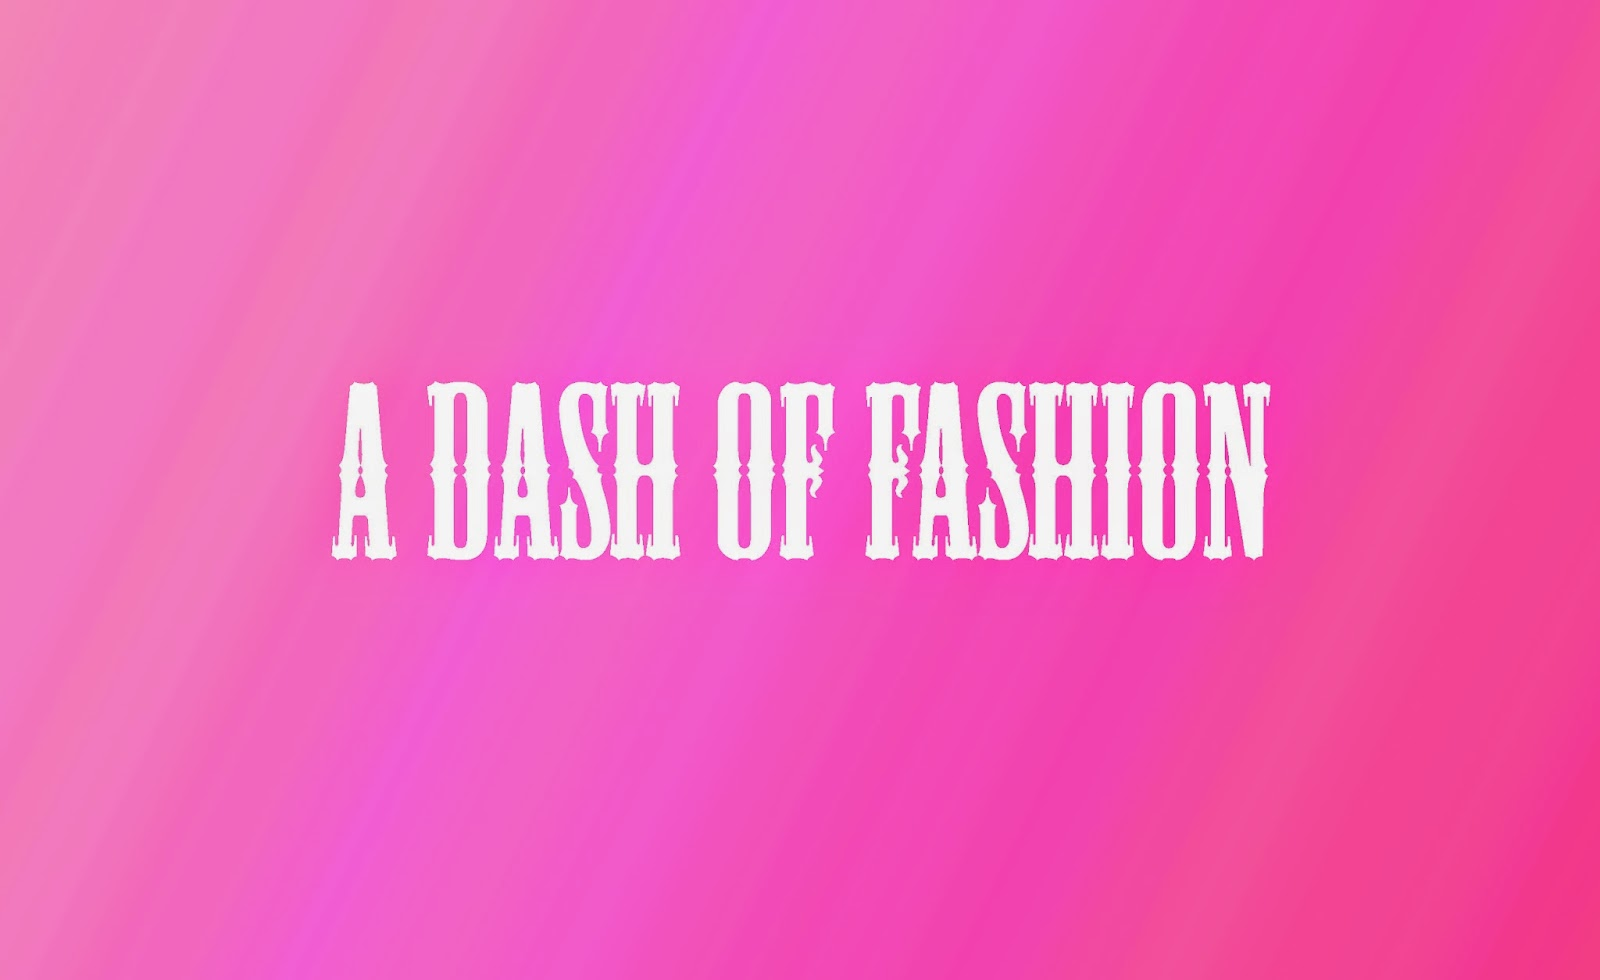 https://adashoffashion.blogspot.com